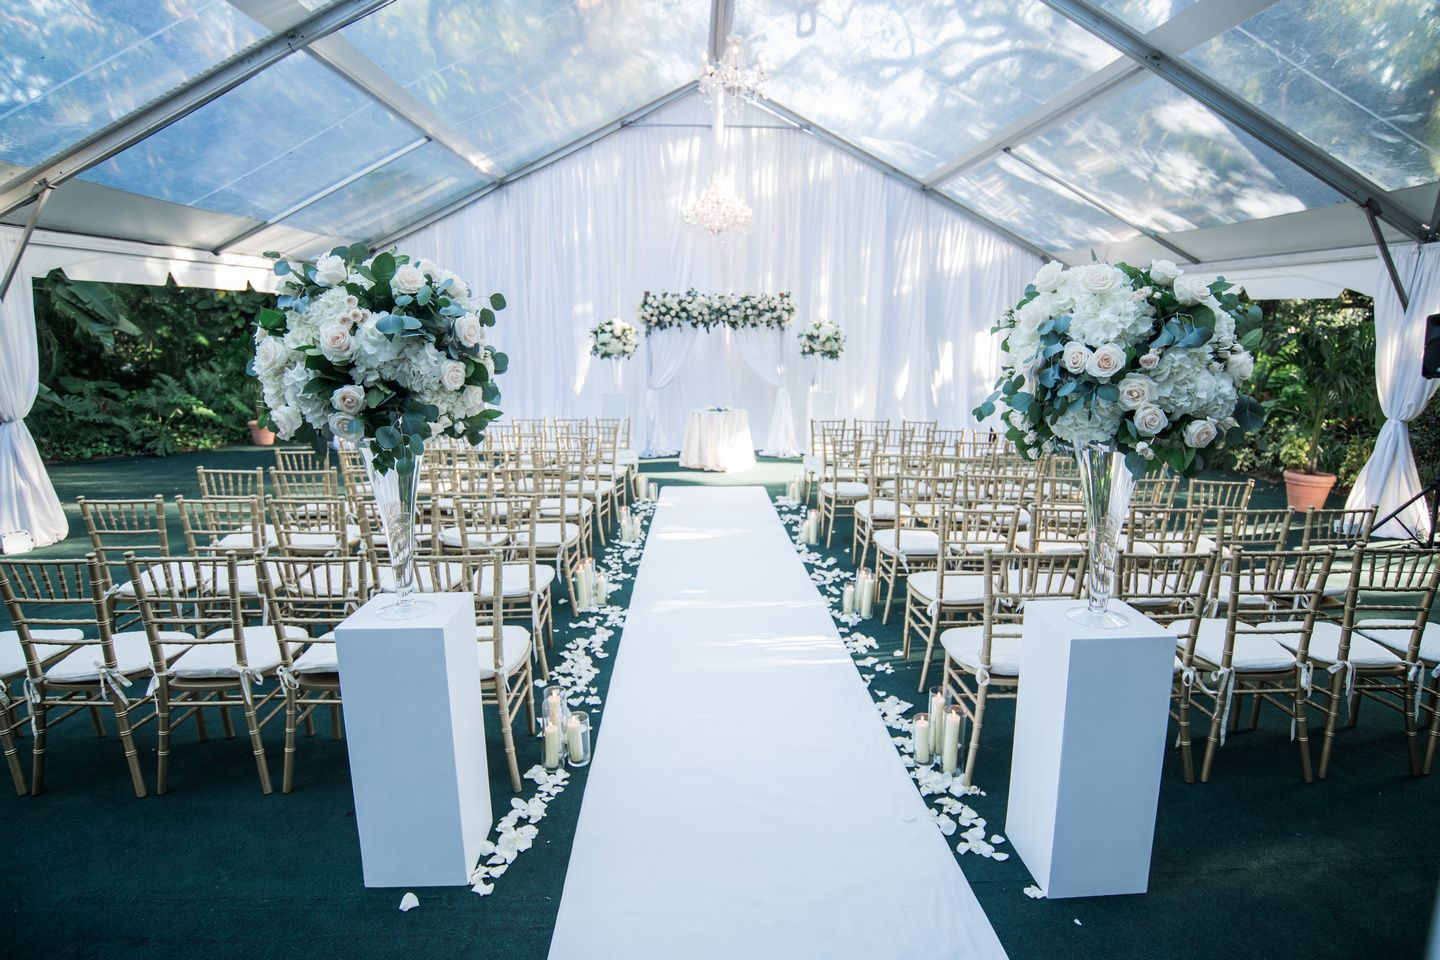 Villa Woodbine Miami Florida Wedding Lush Formal Wedding With Greenery Tall Rose And Hydrangea Centerpiece Te Tent Decorations Tent Wedding Villa Woodbine